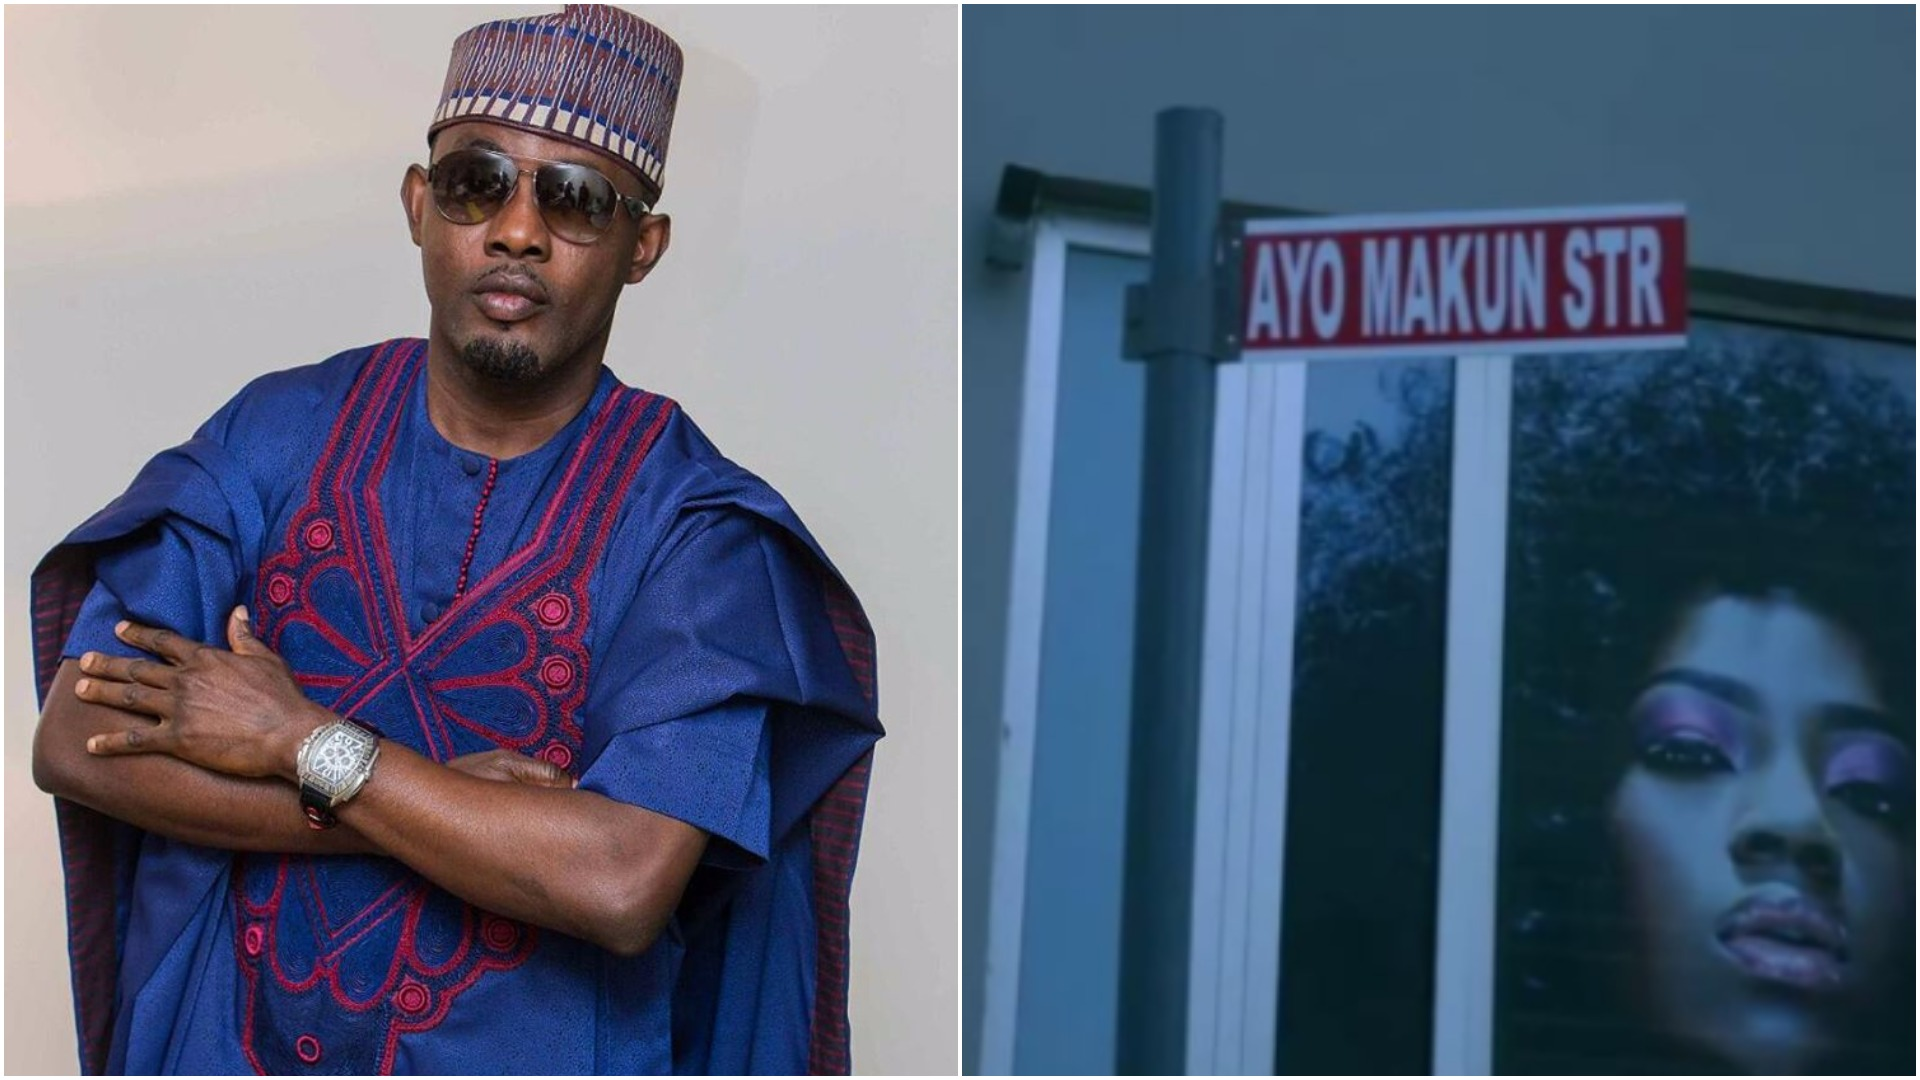 Just like 2face, AY Makun gets a street named after him